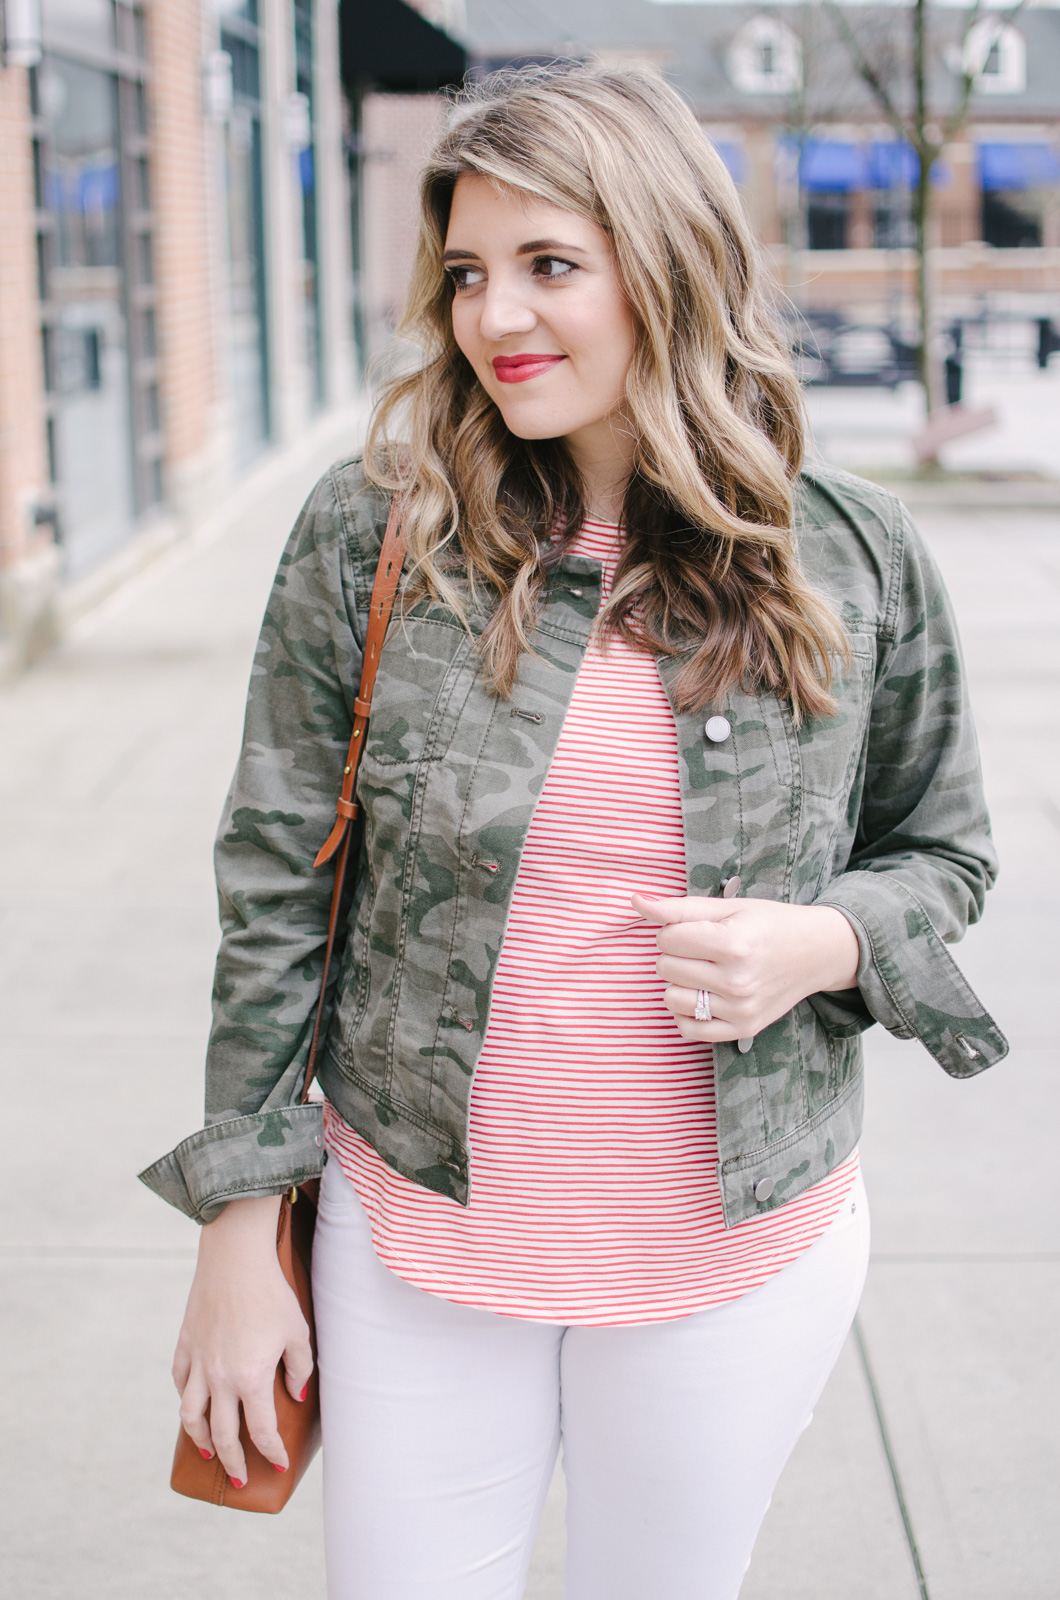 stripes and camo spring outfit - I love this cute print mix outfit for spring! | See more cute spring outfits at bylaurenm.com!